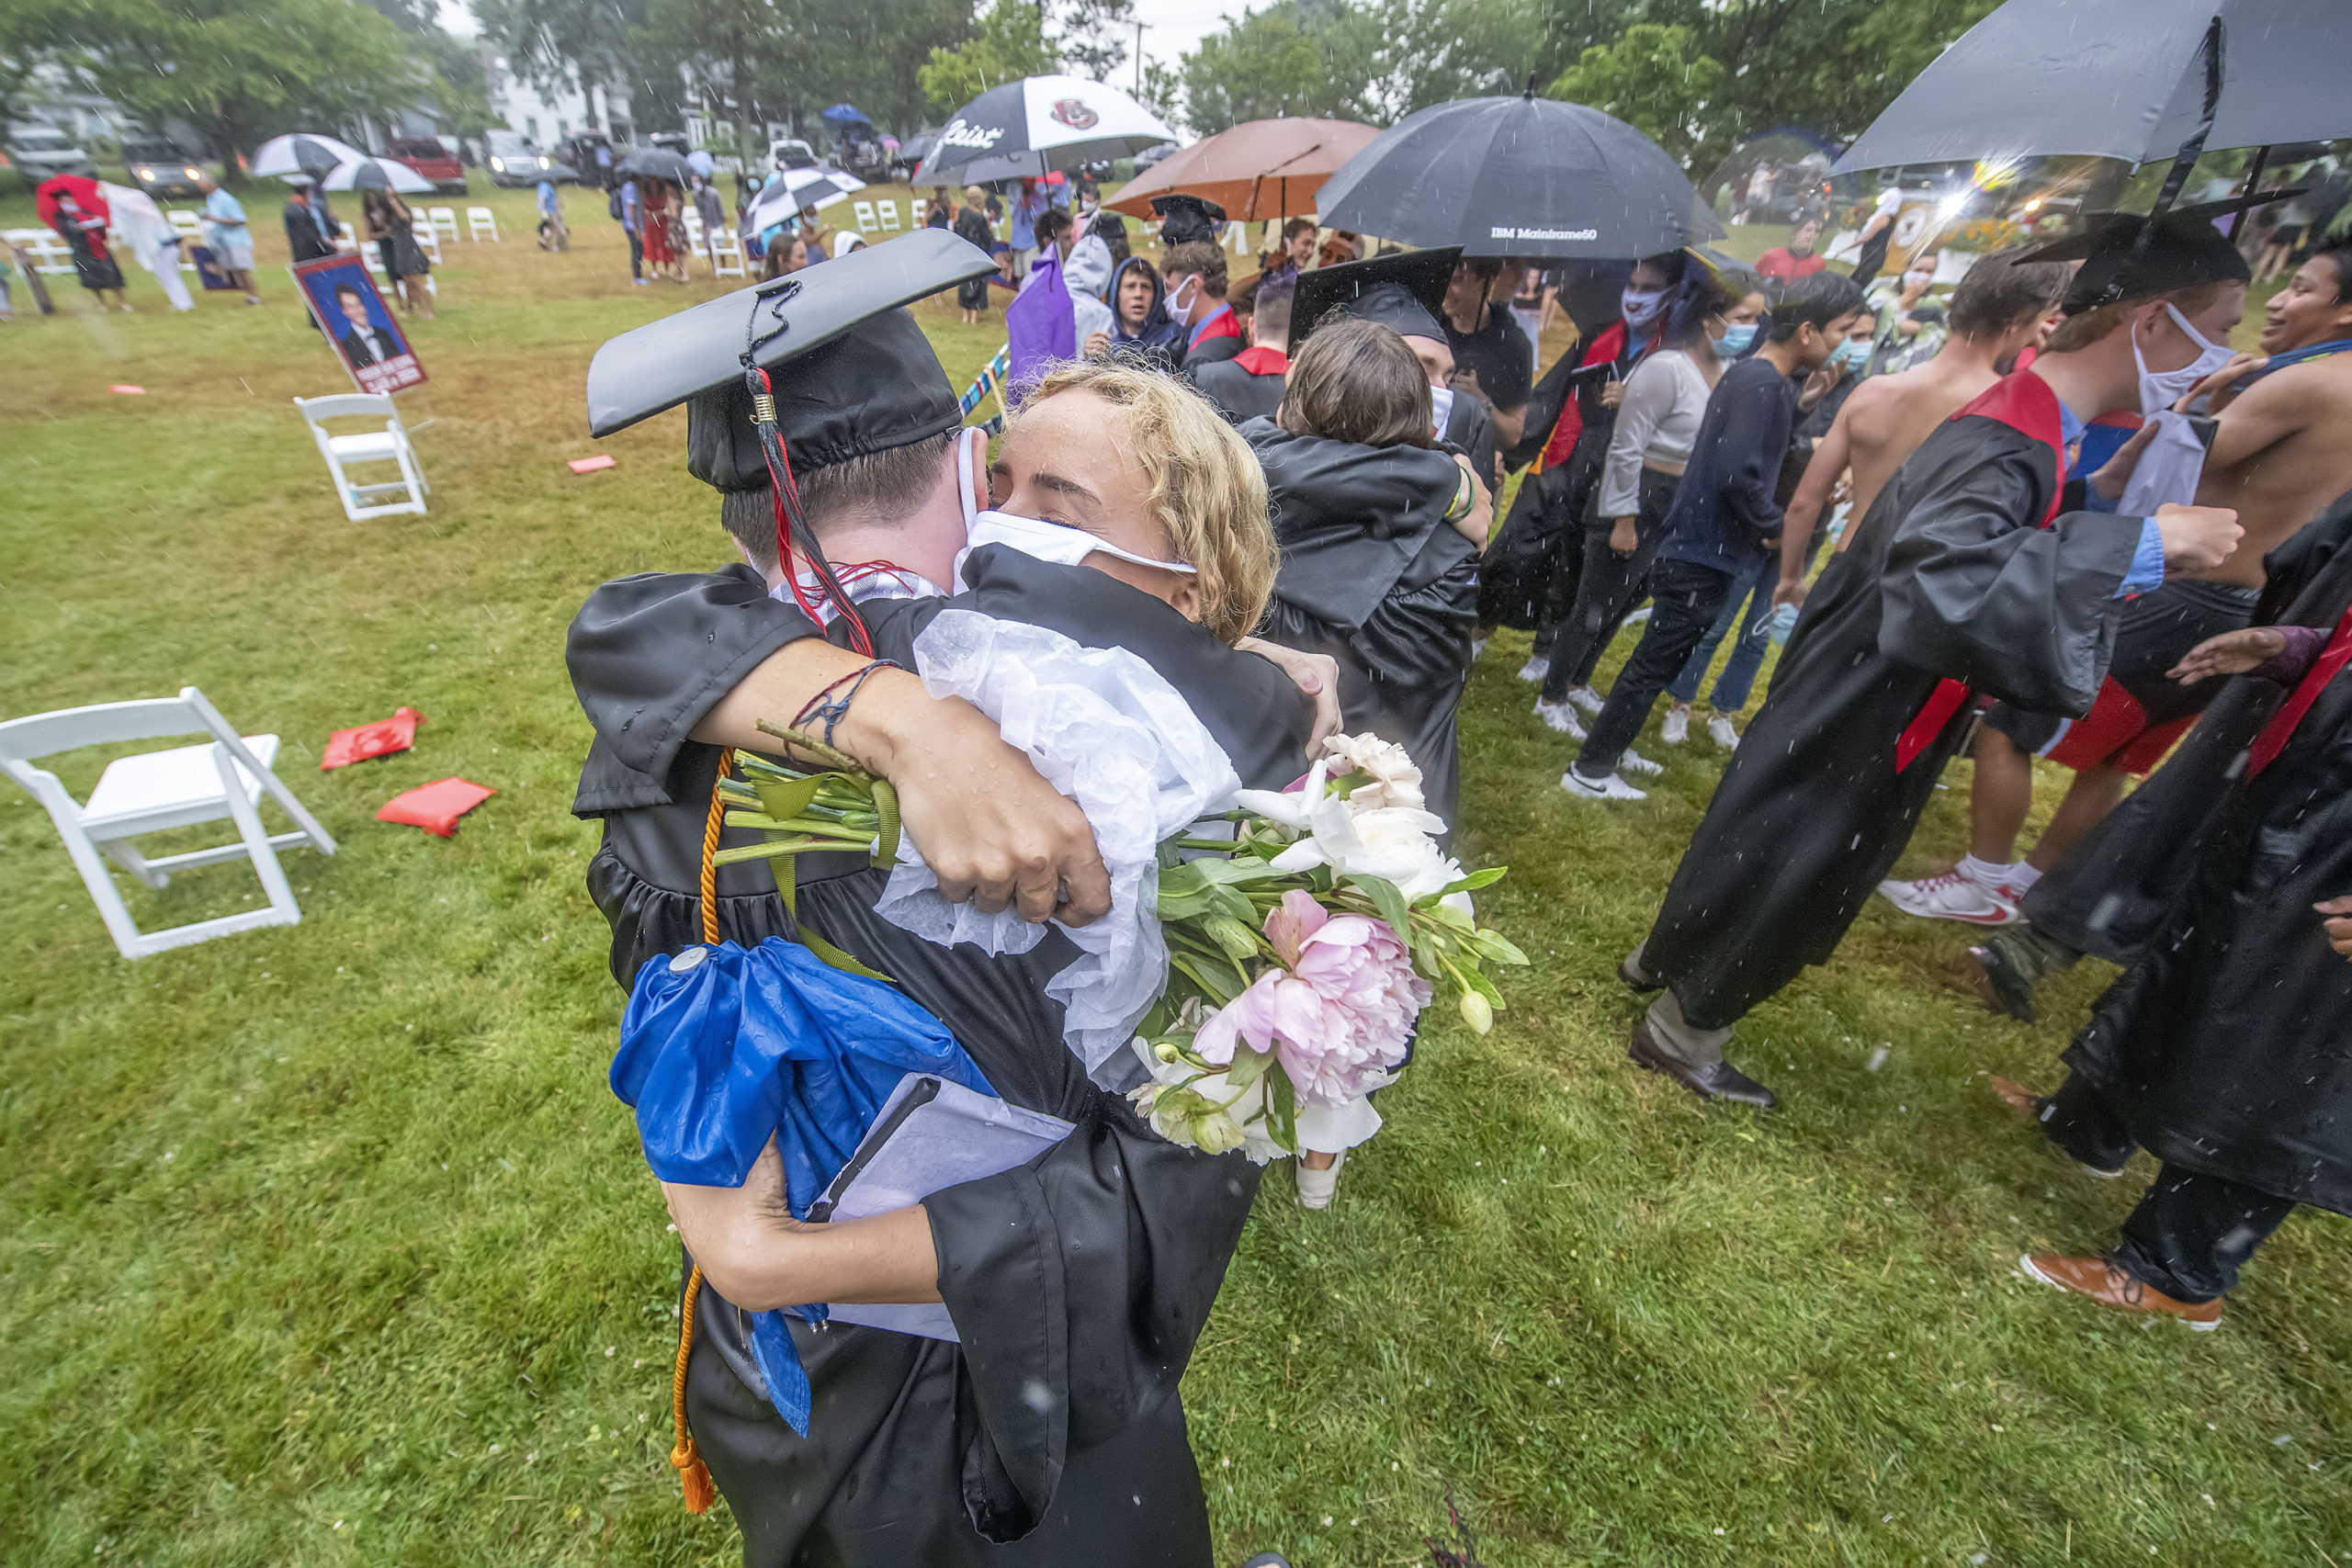 Ellie Borzilleri gets a big hug from Dylan Kruel following the Pierson High School 2020 Commencement Ceremony at Pierson High School on Saturday.